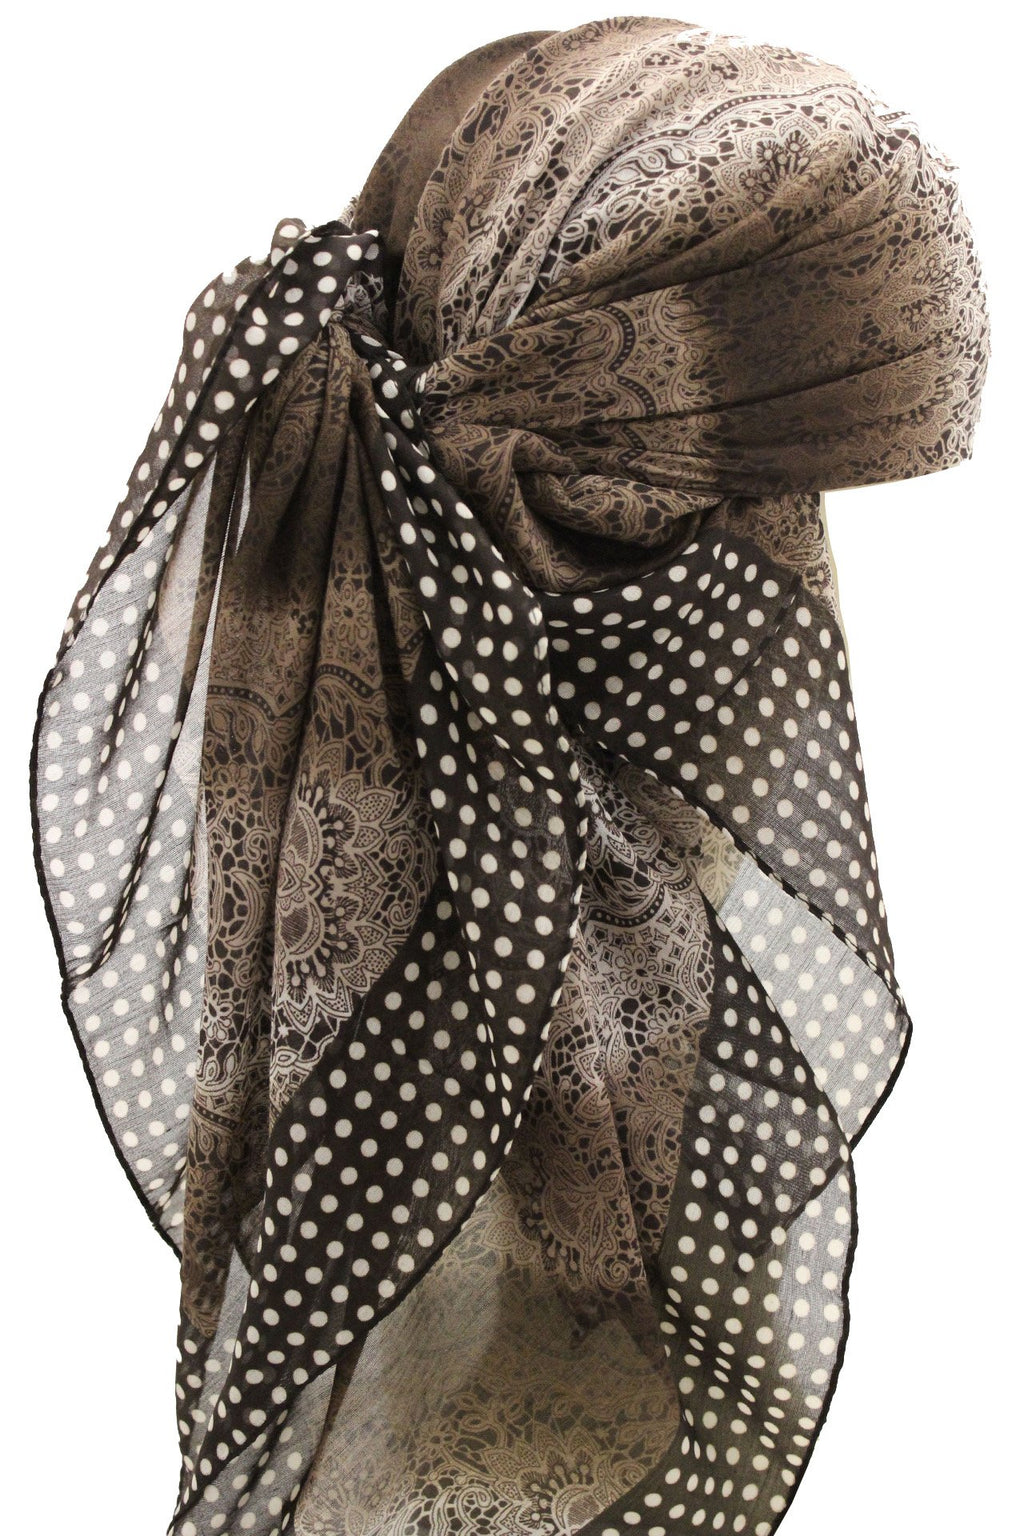 Deresina Everyday square chemo headscarf brown cream